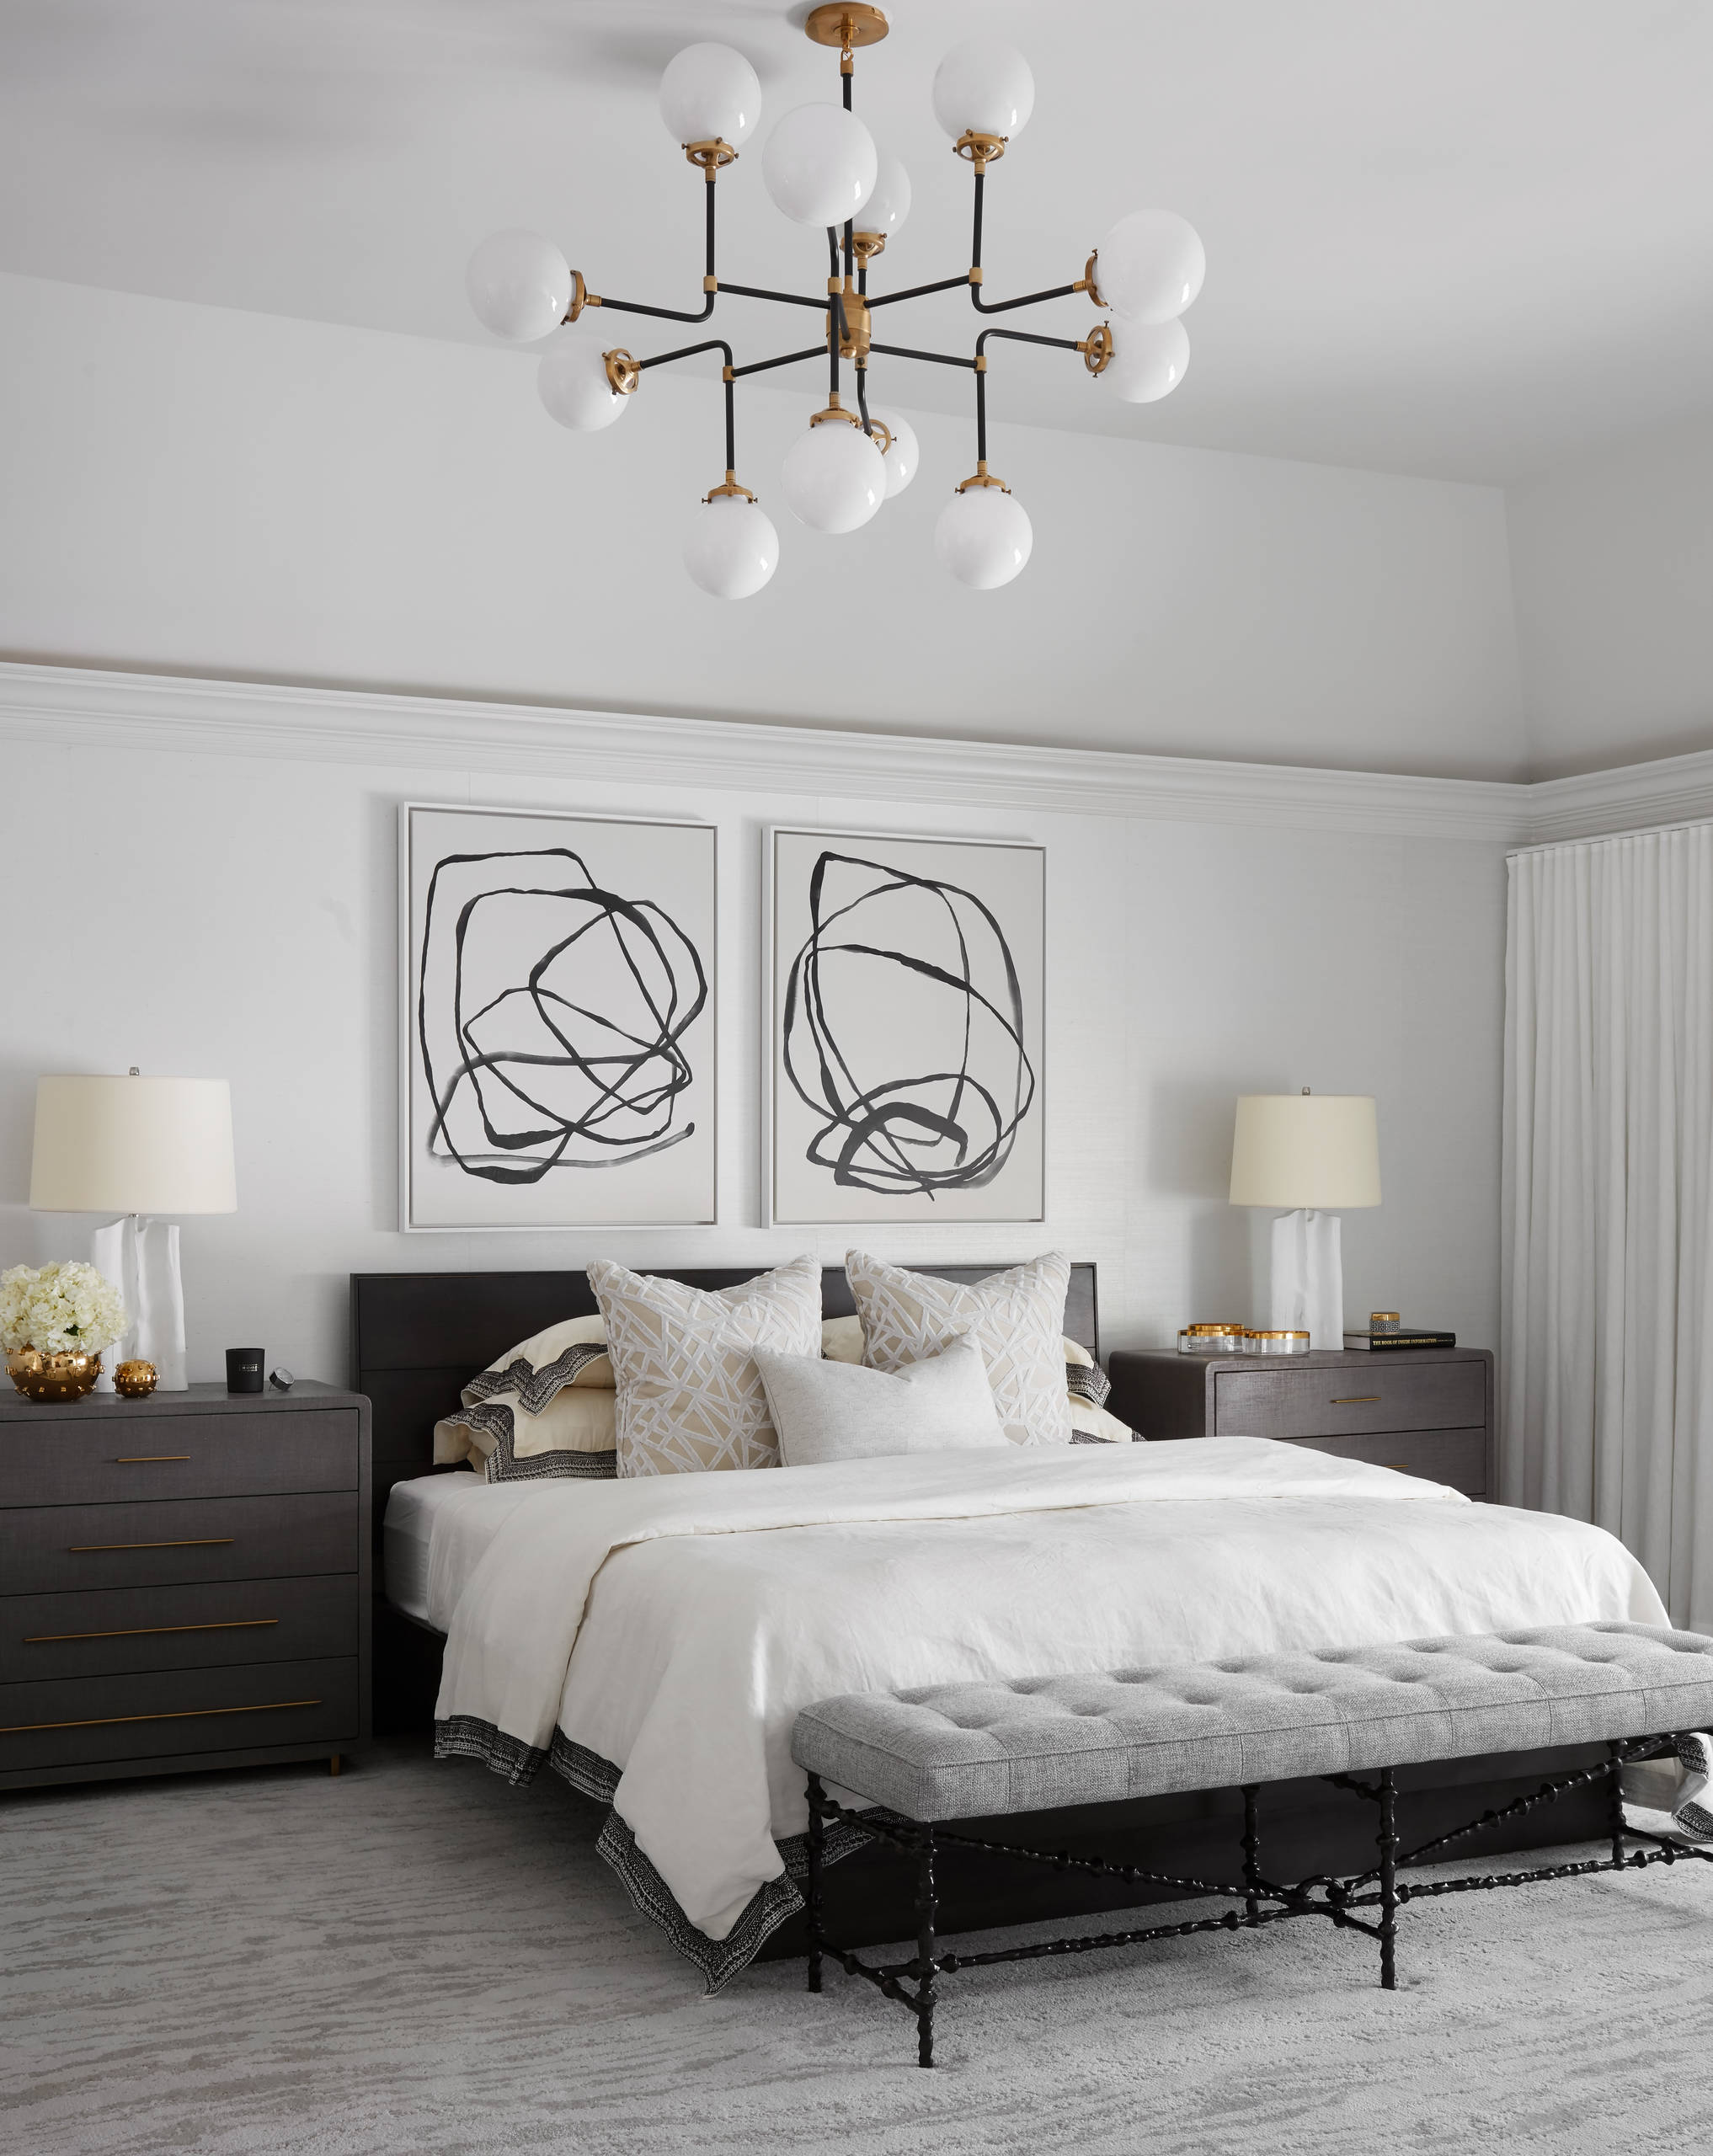 5 Beautiful Contemporary Master Bedroom Pictures & Ideas